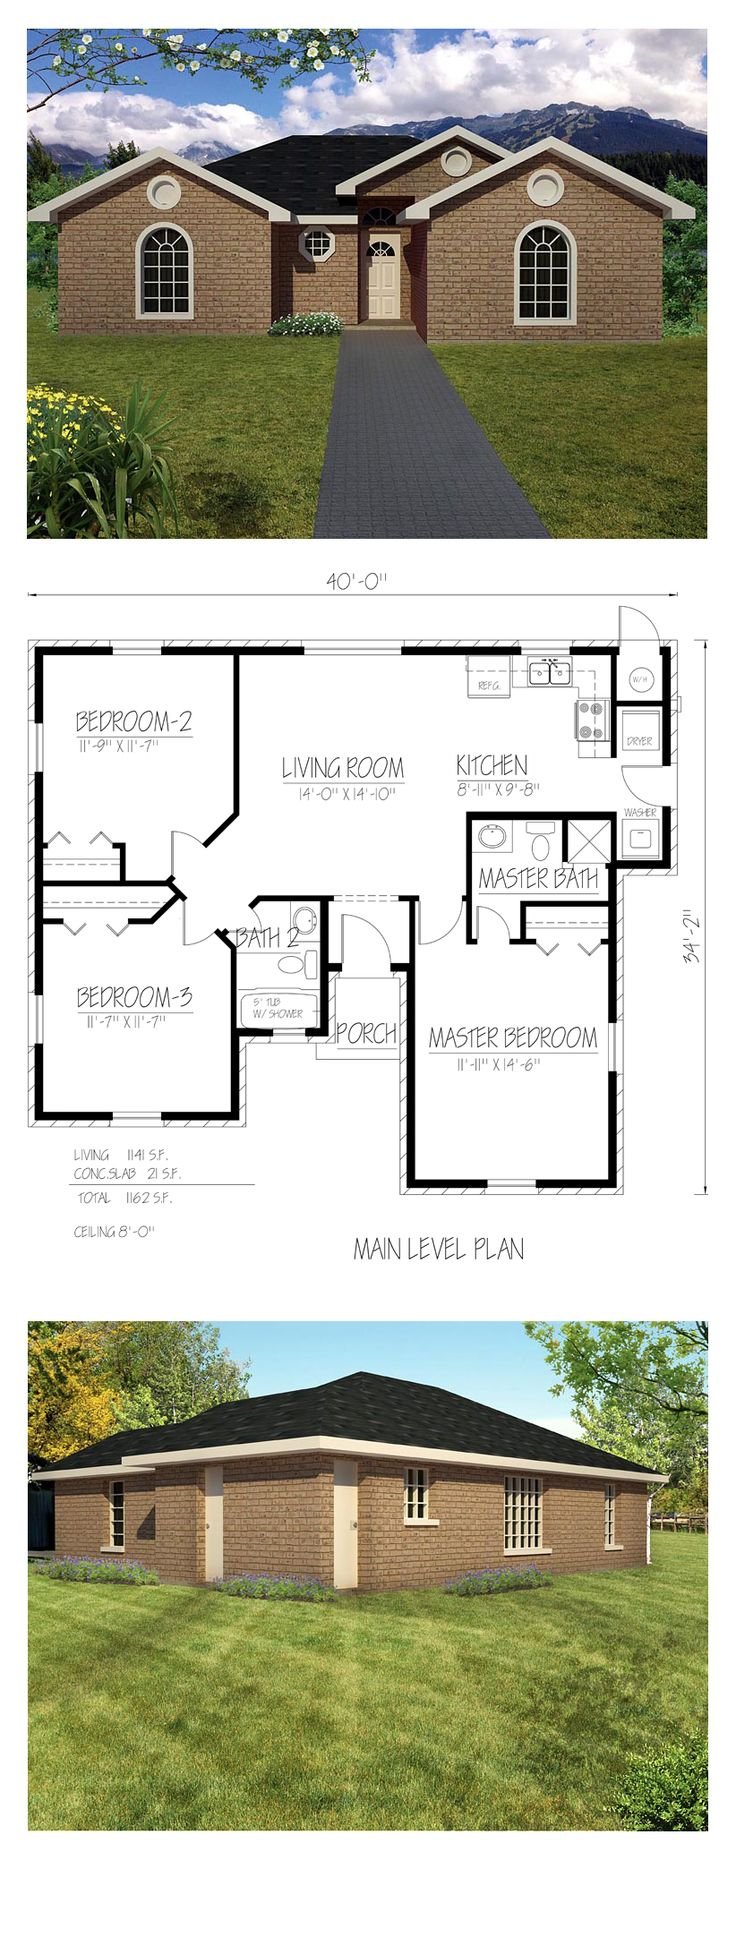 Southwest house plan 71921 total living area 1141 sq for Southwest home plans